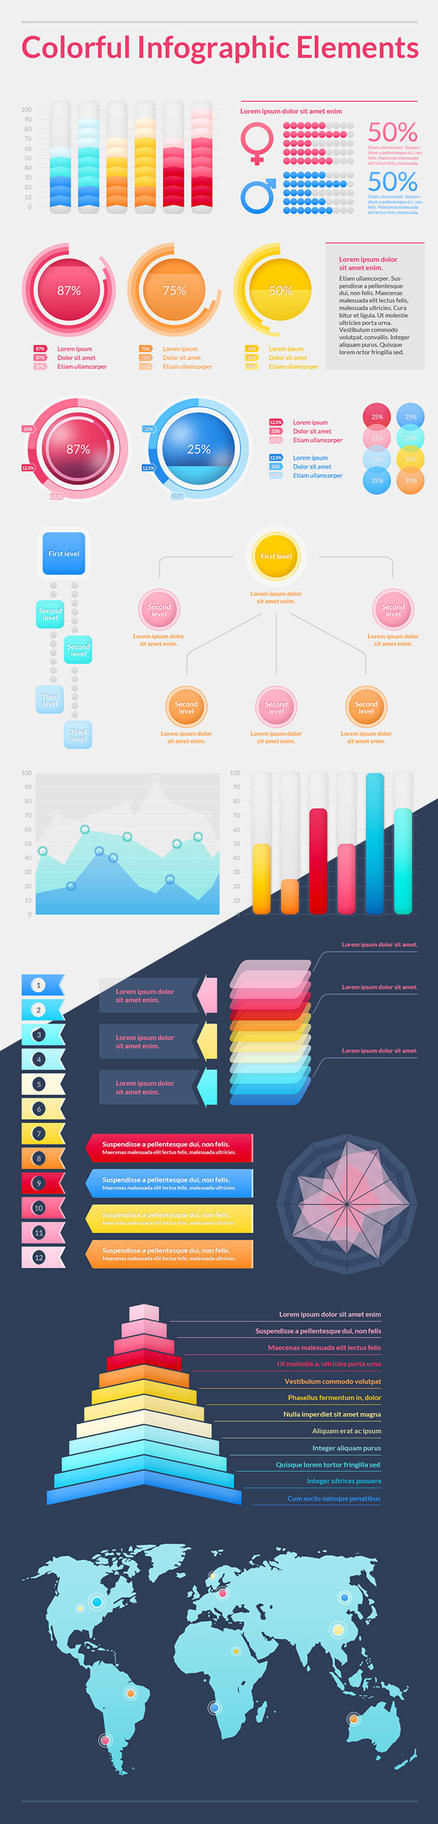 Colorful Infographic Elements by magdadymanska